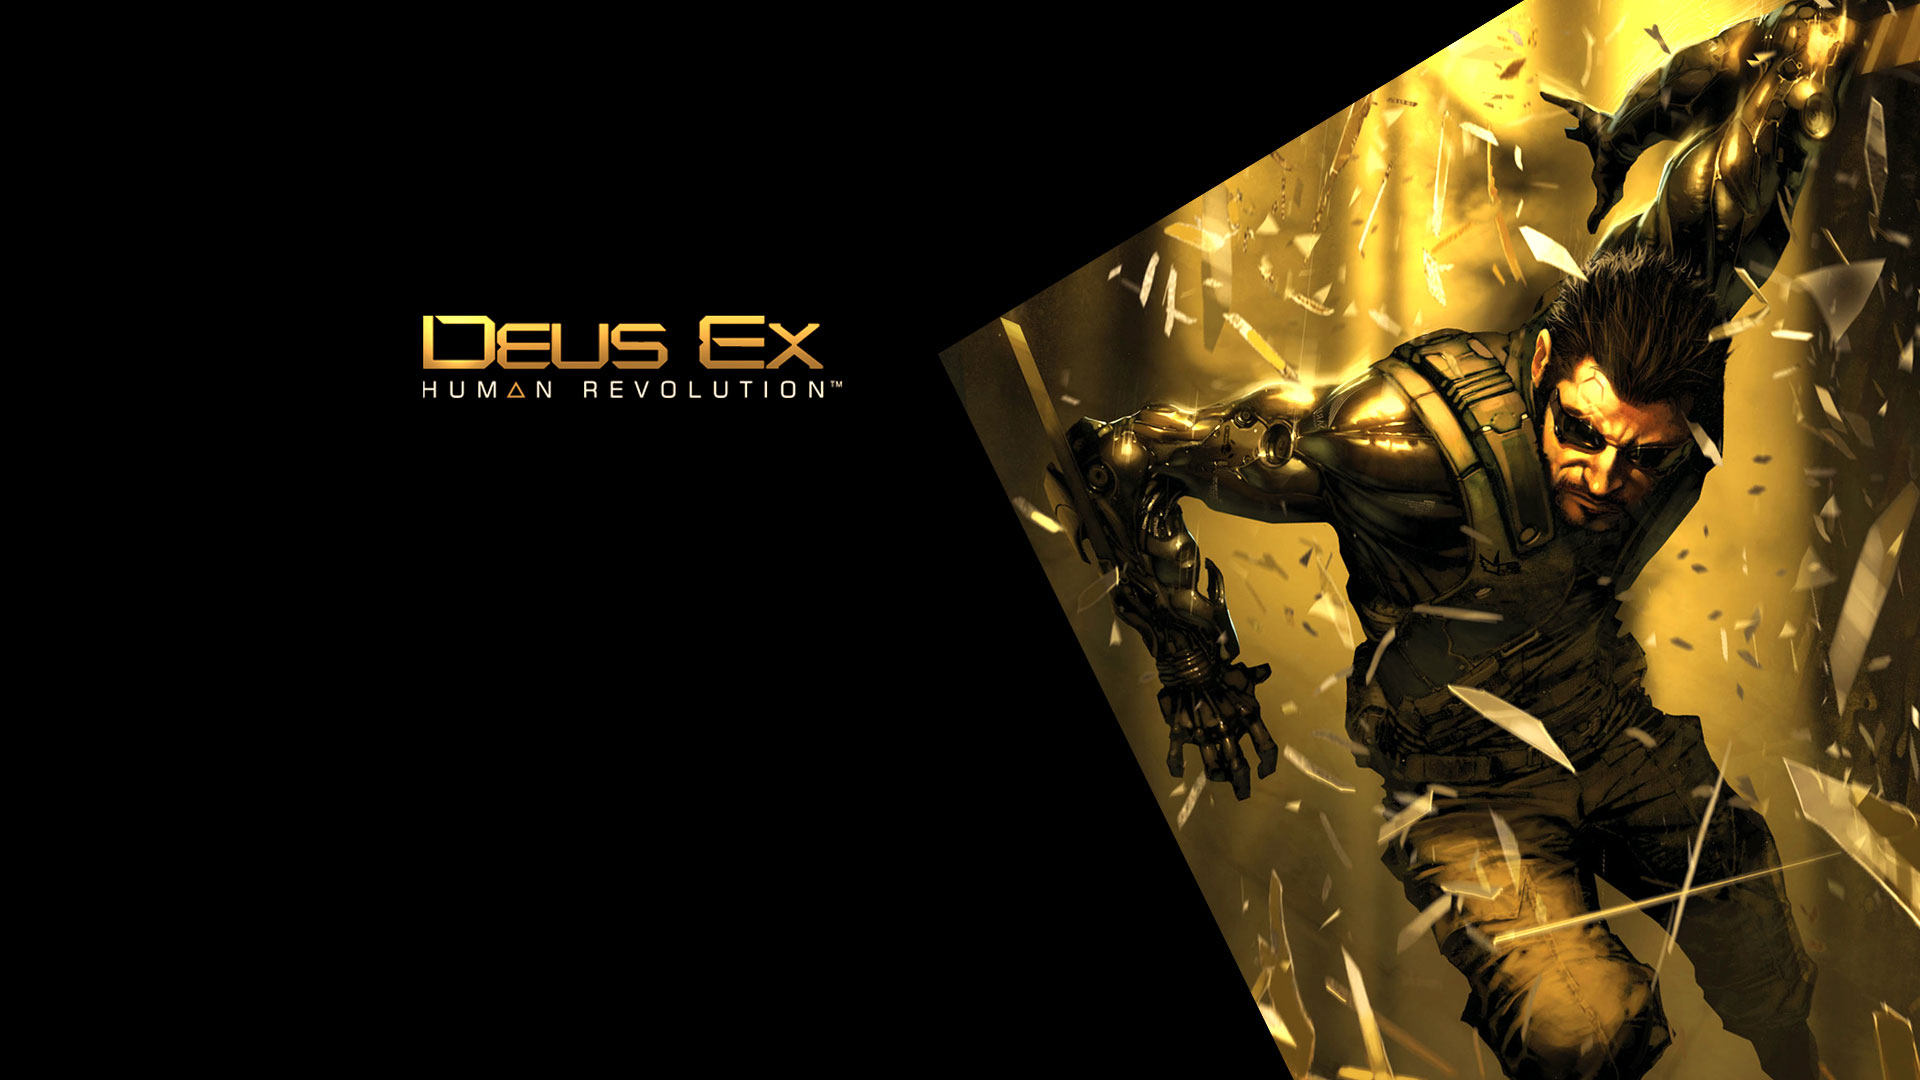 Deus Ex Human Revolution Wallpapers in HD Page 4 1920x1080